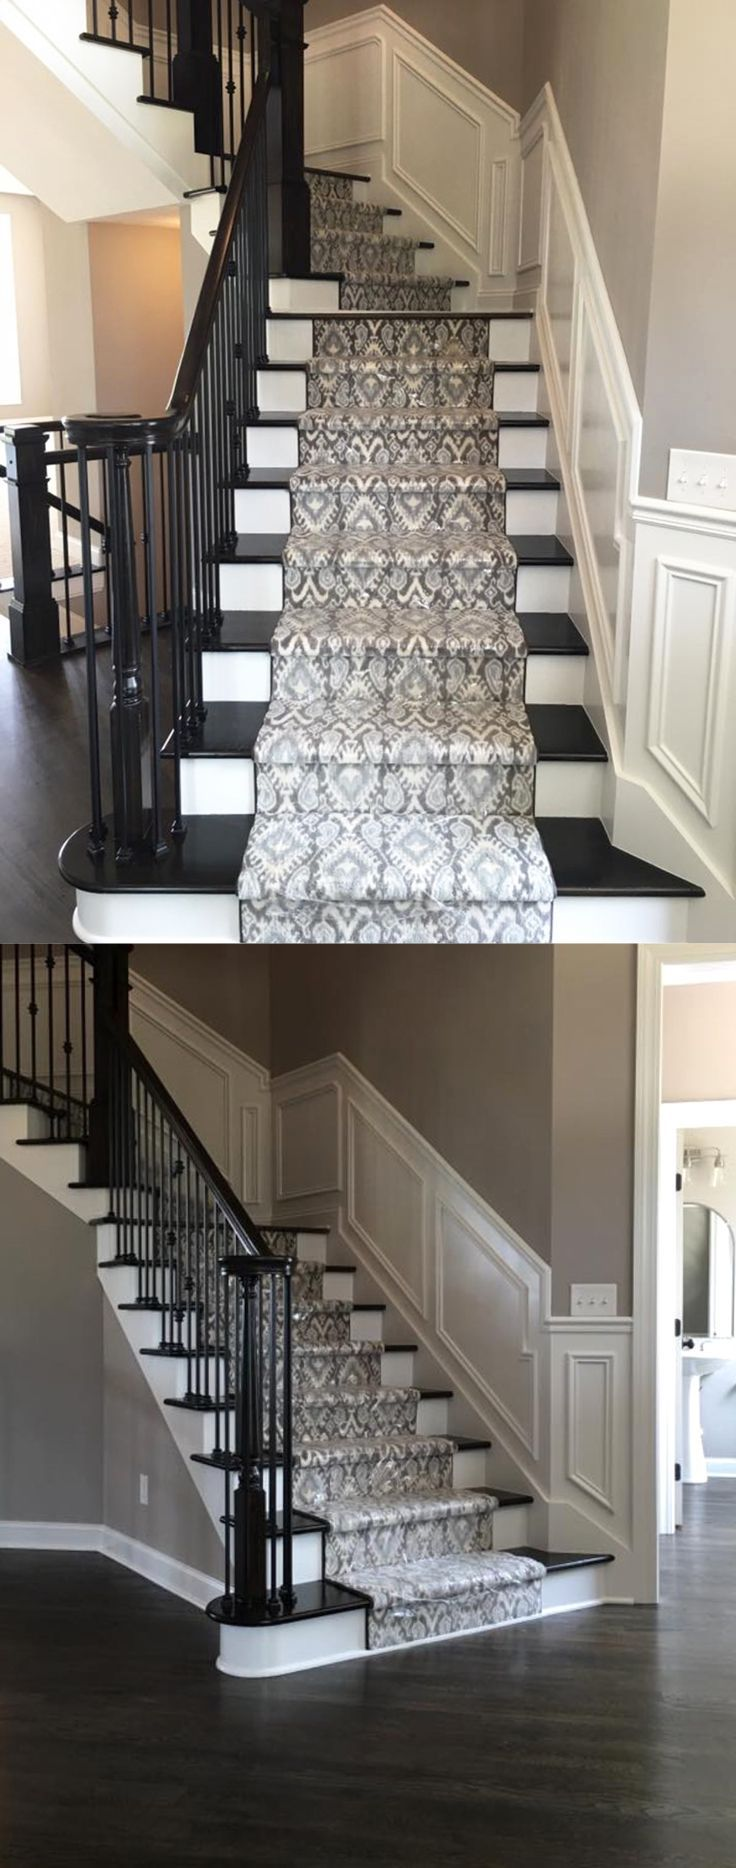 Beautiful Patterned Stair Runner on Dark Stained Stairs with Dark ...